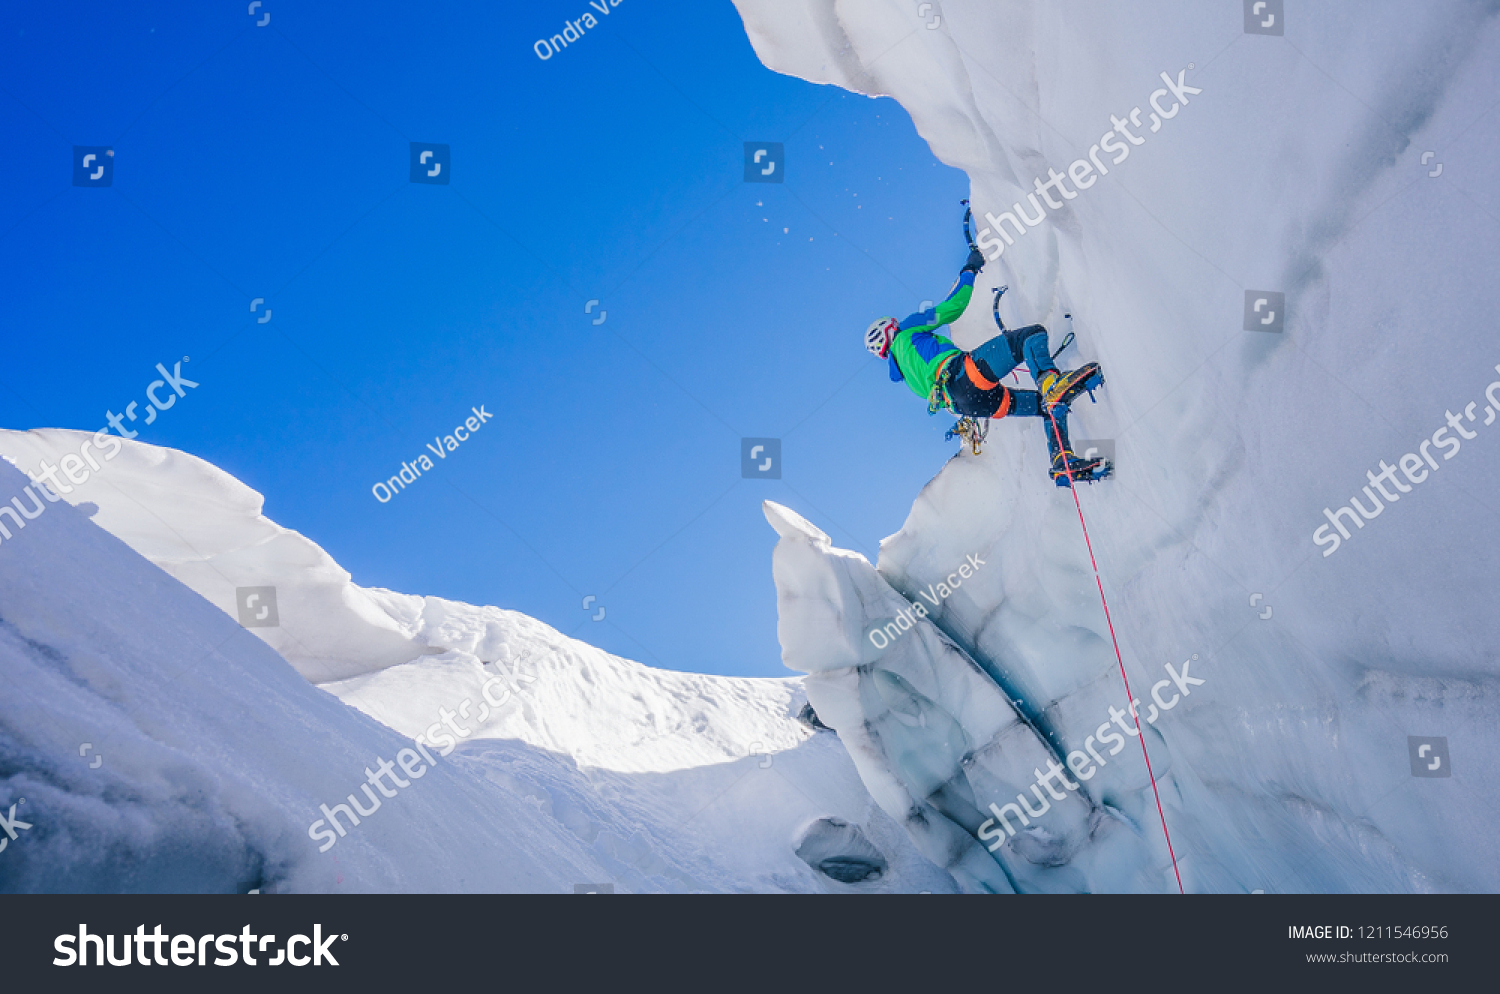 Epic shot of an ice climber climbing on a wall of ice. Mountaineer, climber or alpinist on an adventure extreme ascent with ice axe and crampons. Alpine extreme climbing on a serac or creavasse. #1211546956